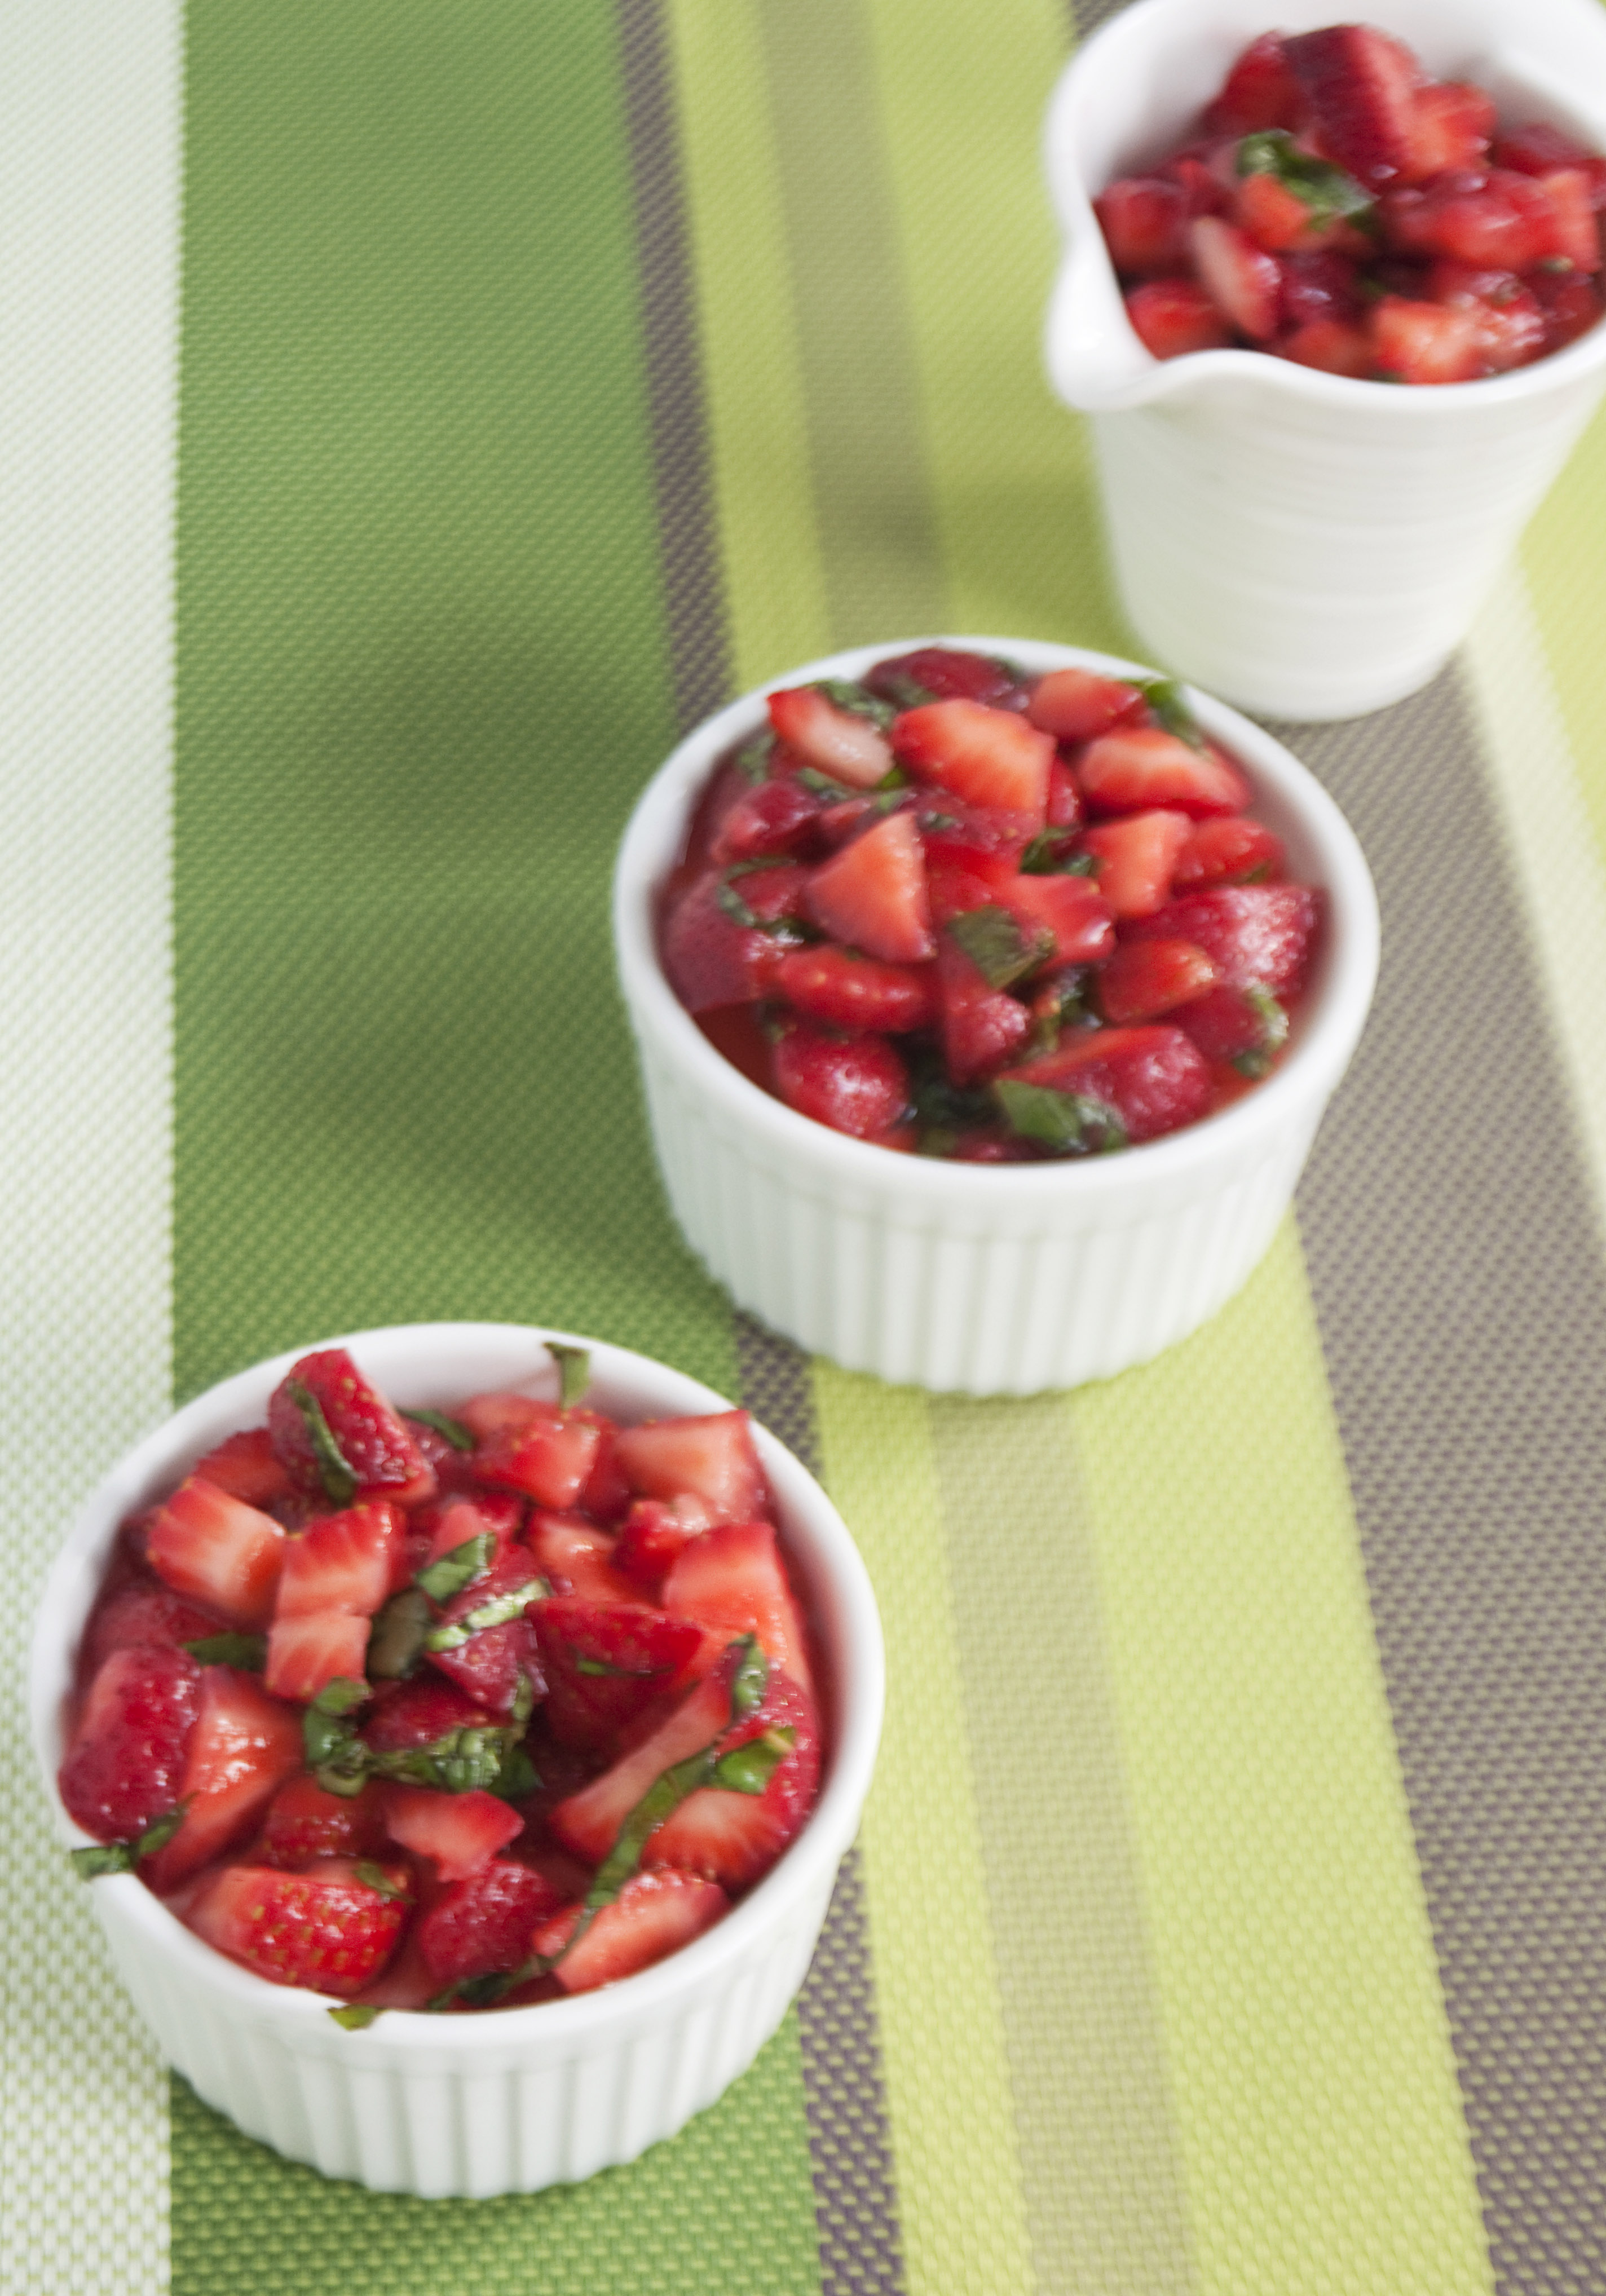 Lemon Basil Panna Cotta with Strawberries